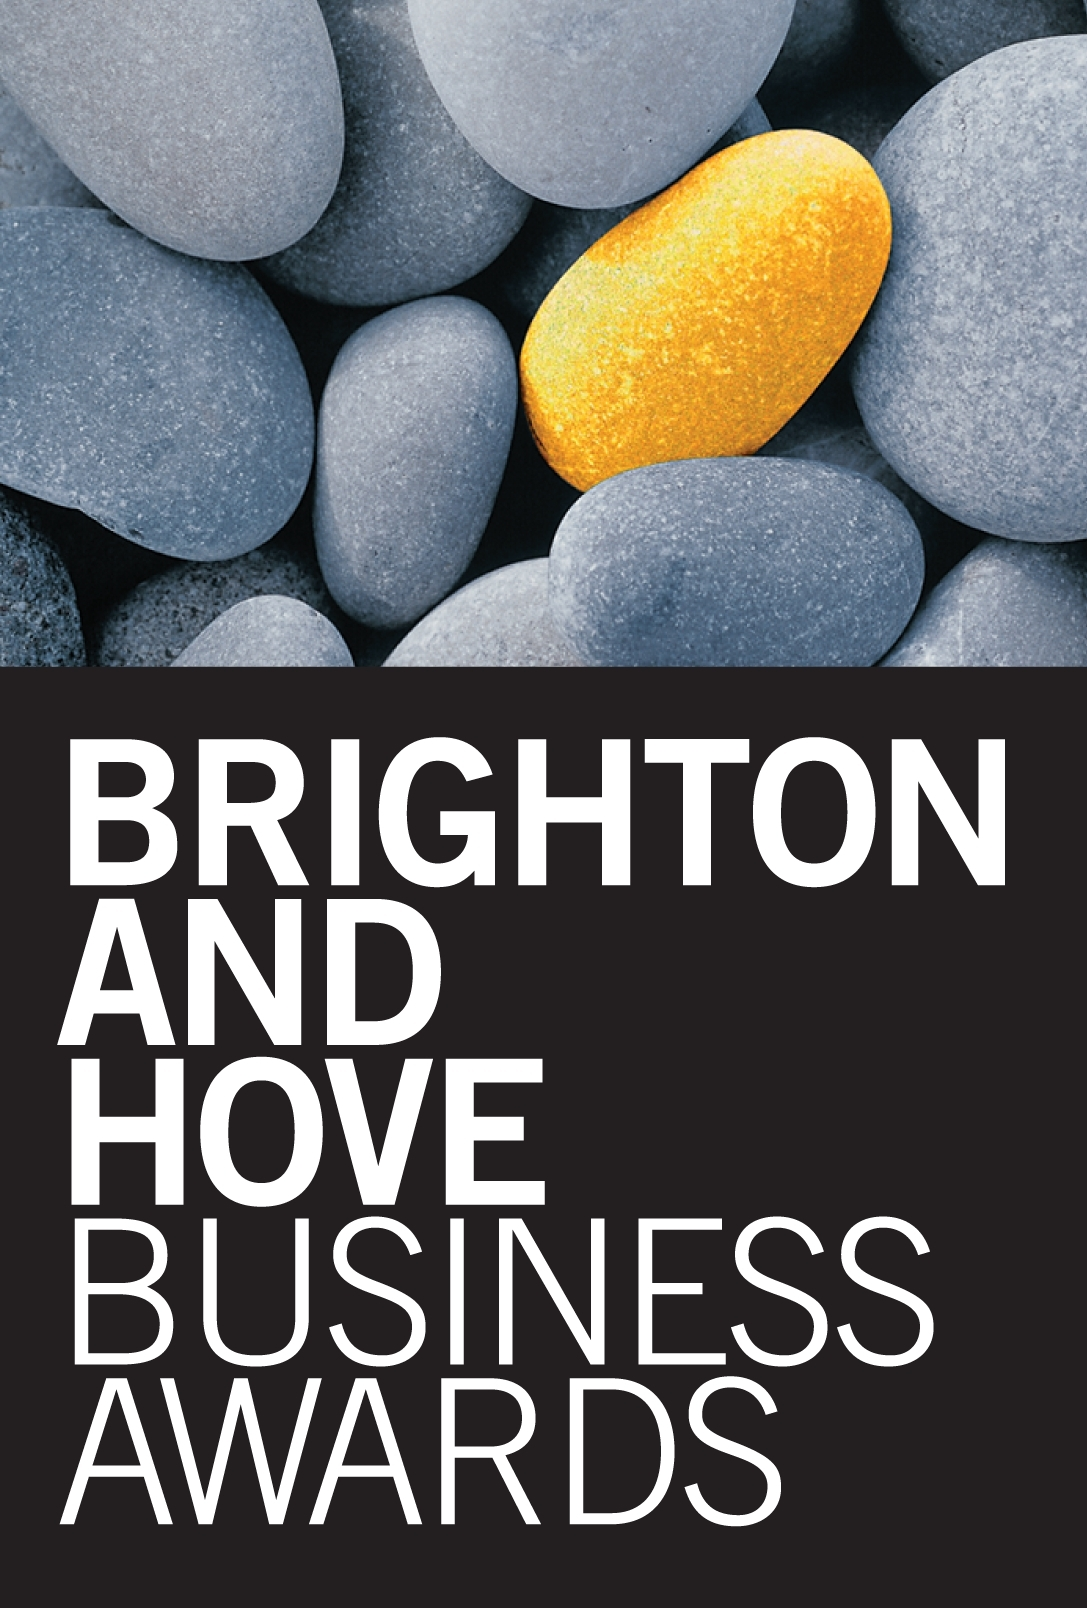 Entries open for the Brighton and Hove Business Awards 2014